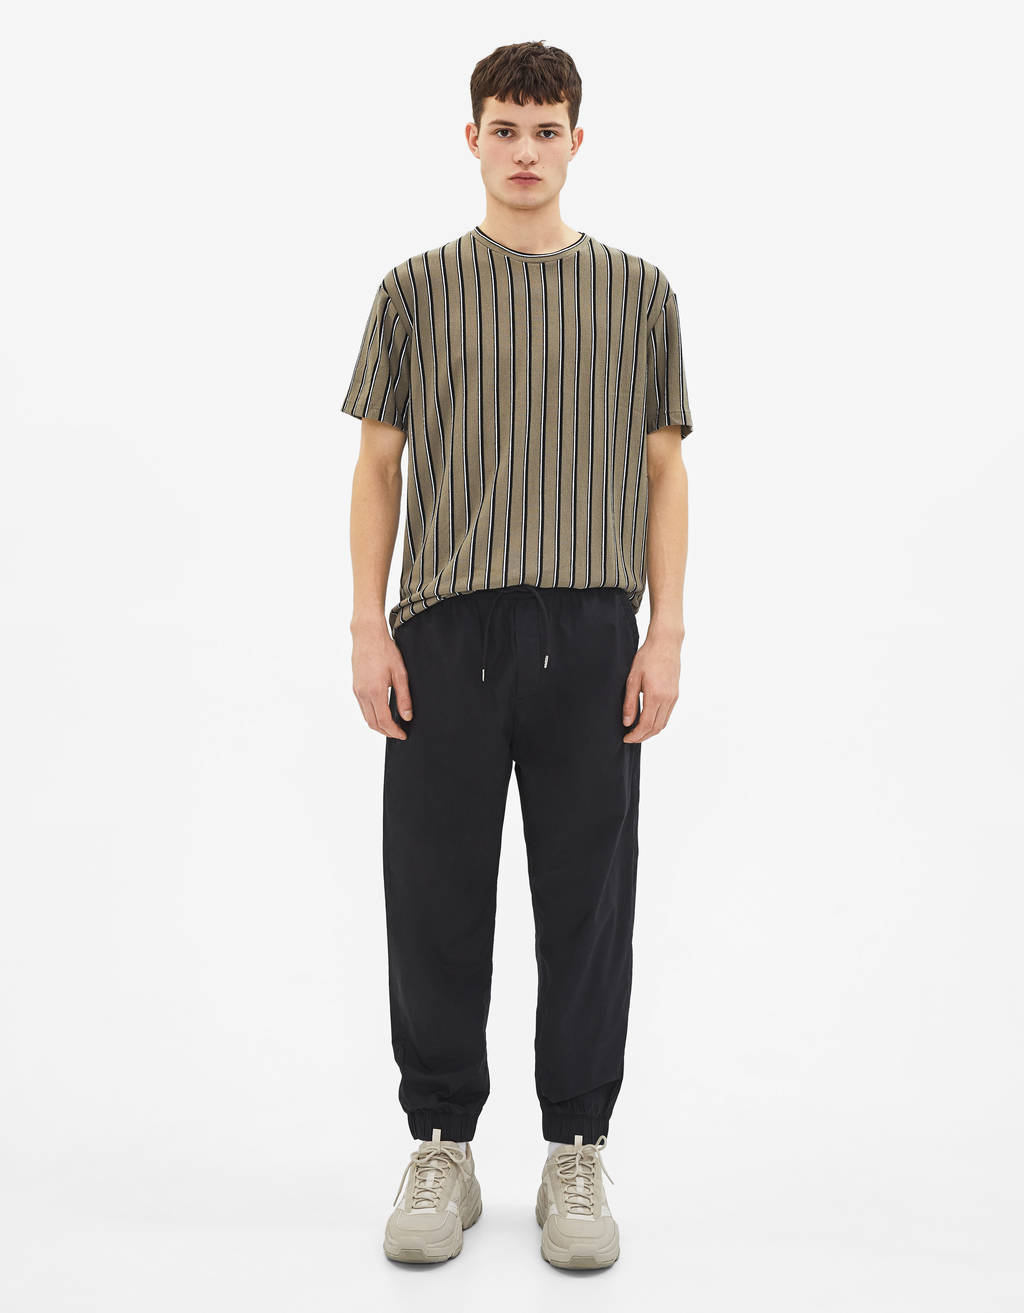 Loose Fit jogging trousers